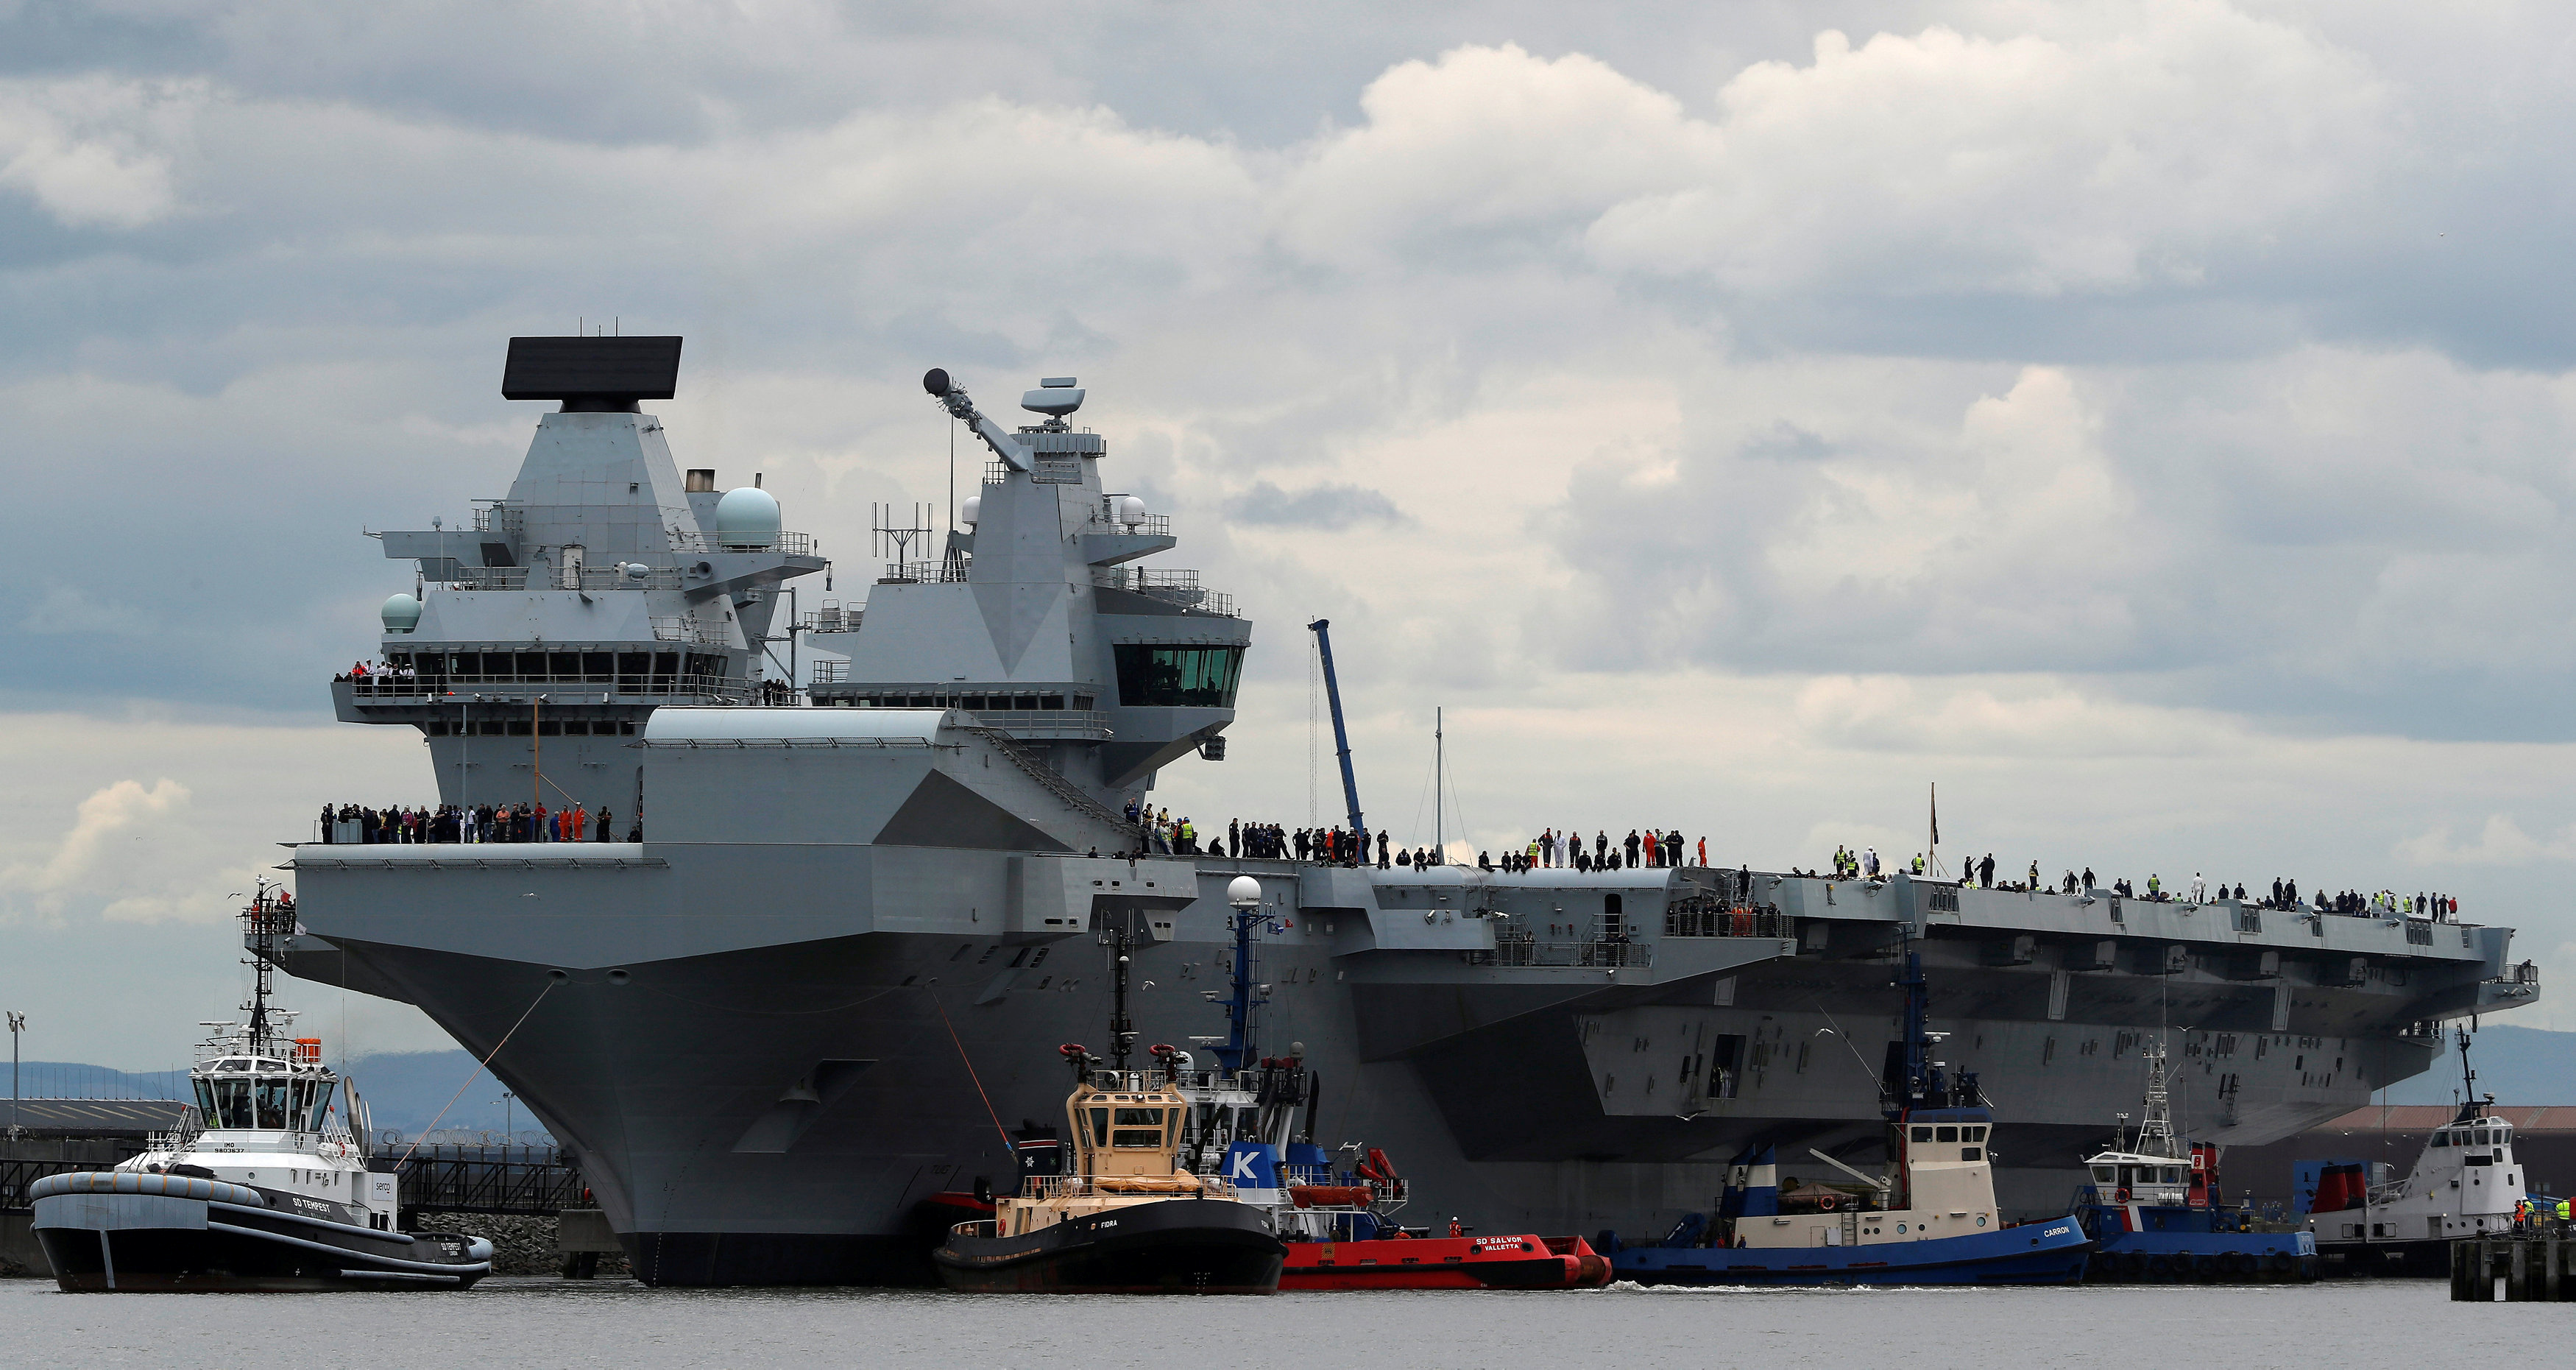 The British aircraft carrier HMS Queen Elizabeth is pulled from its berth by tugs before its maiden voyage, in Rosyth, Scotland